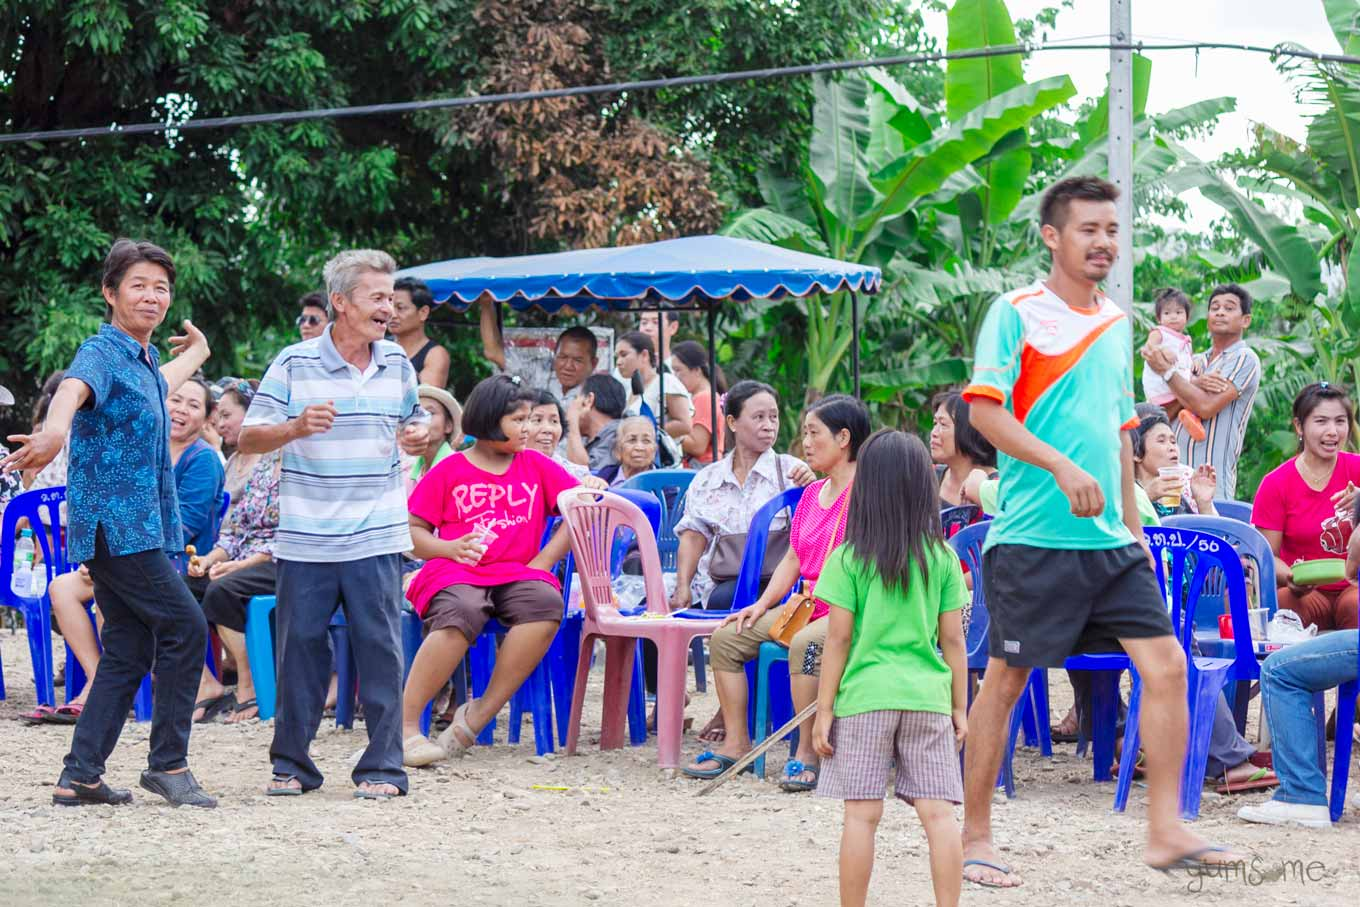 People dancing in a village in Thailand.